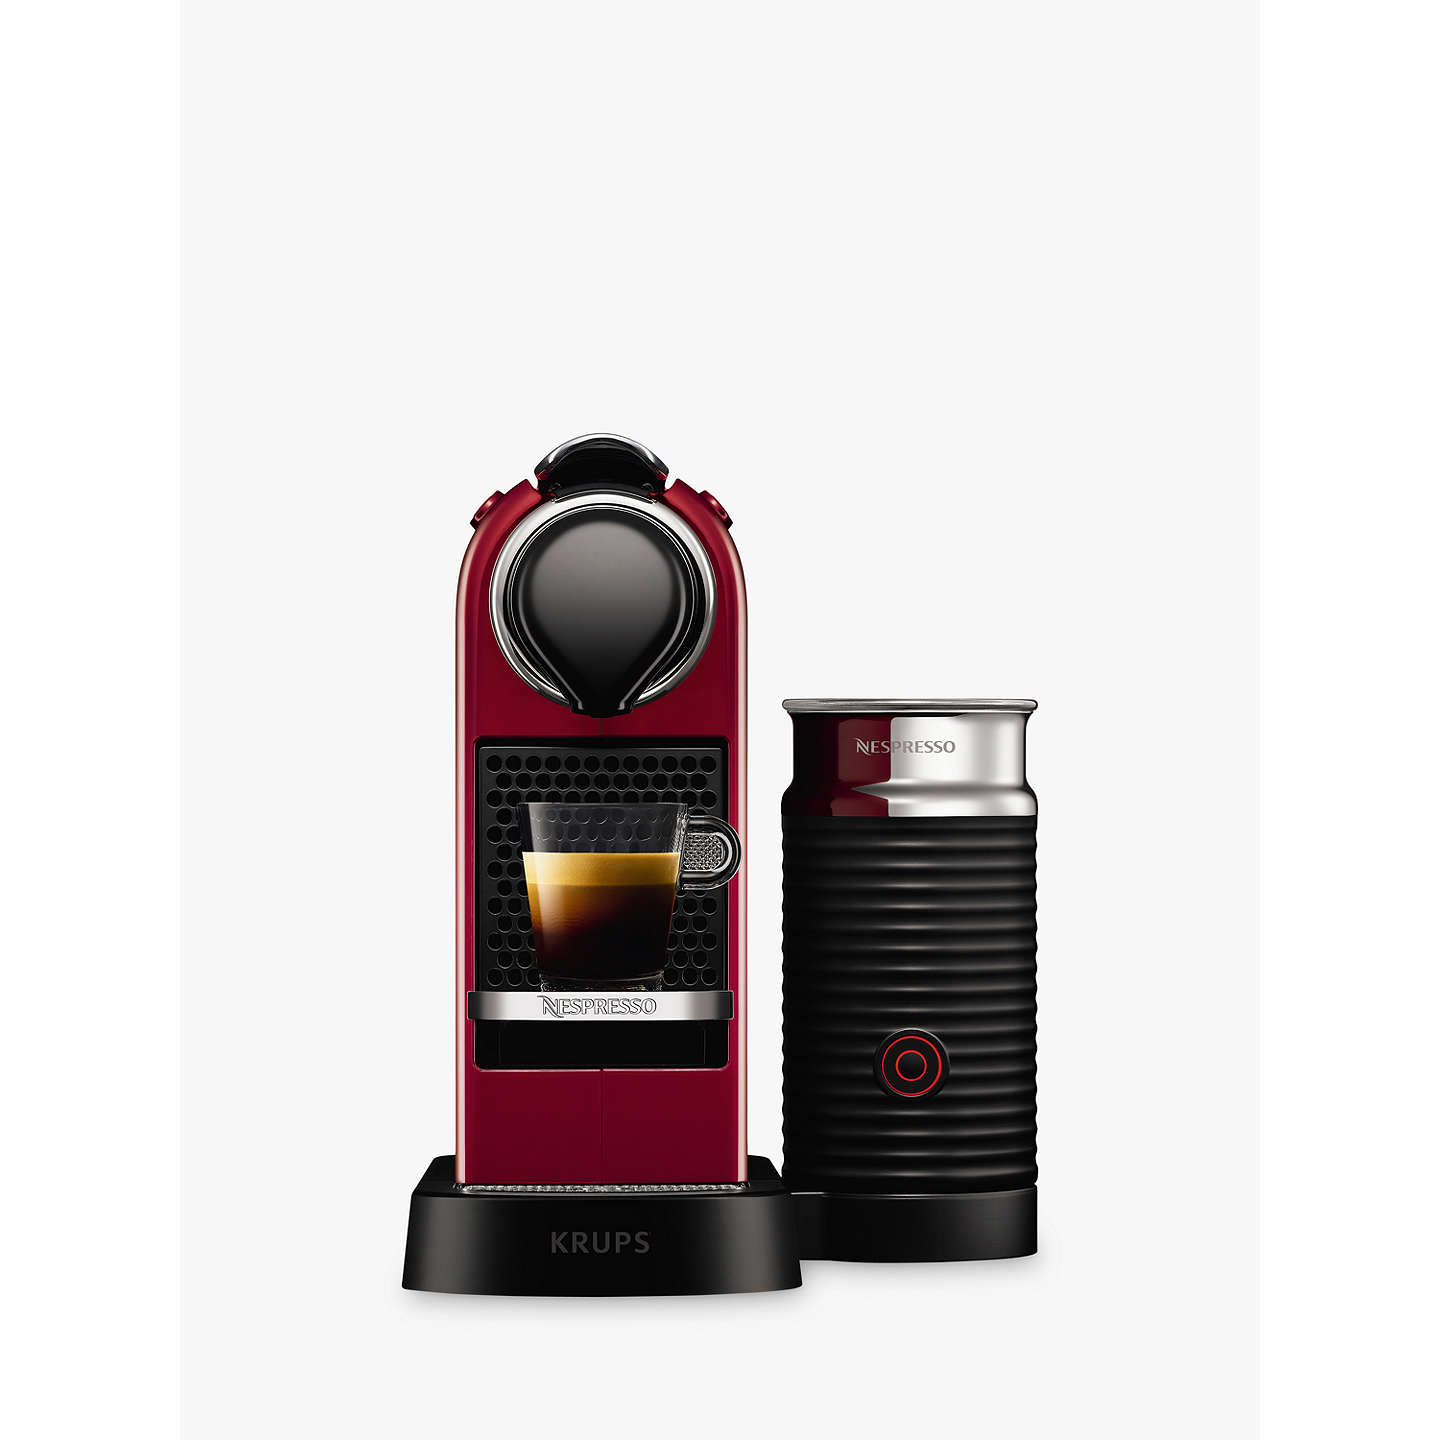 nespresso citiz milk coffee machine by krups with milk frother cherry red at john lewis. Black Bedroom Furniture Sets. Home Design Ideas